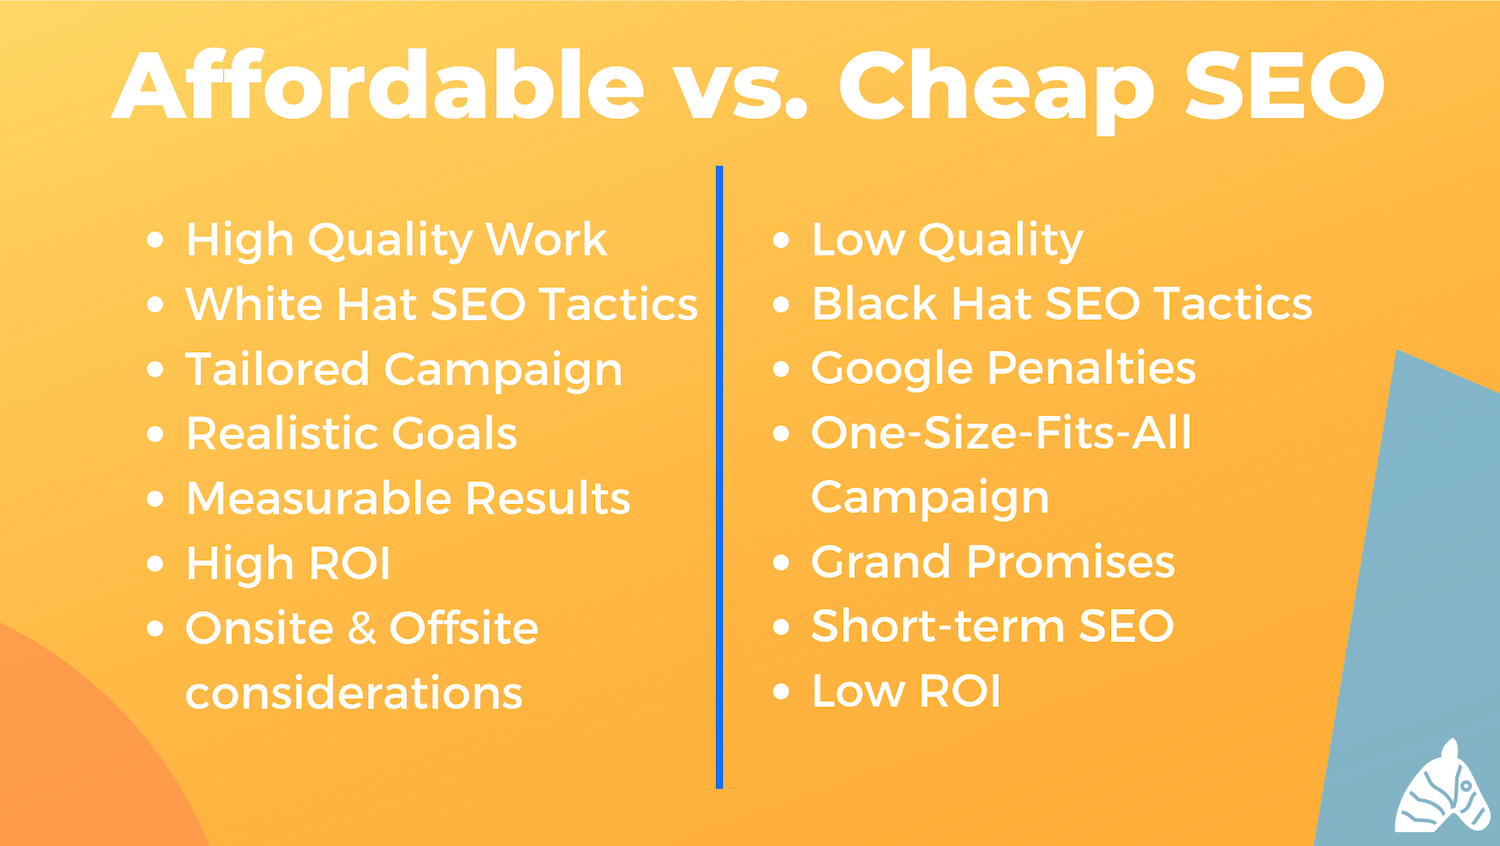 addordable vs. cheap seo Pro's and Cons List